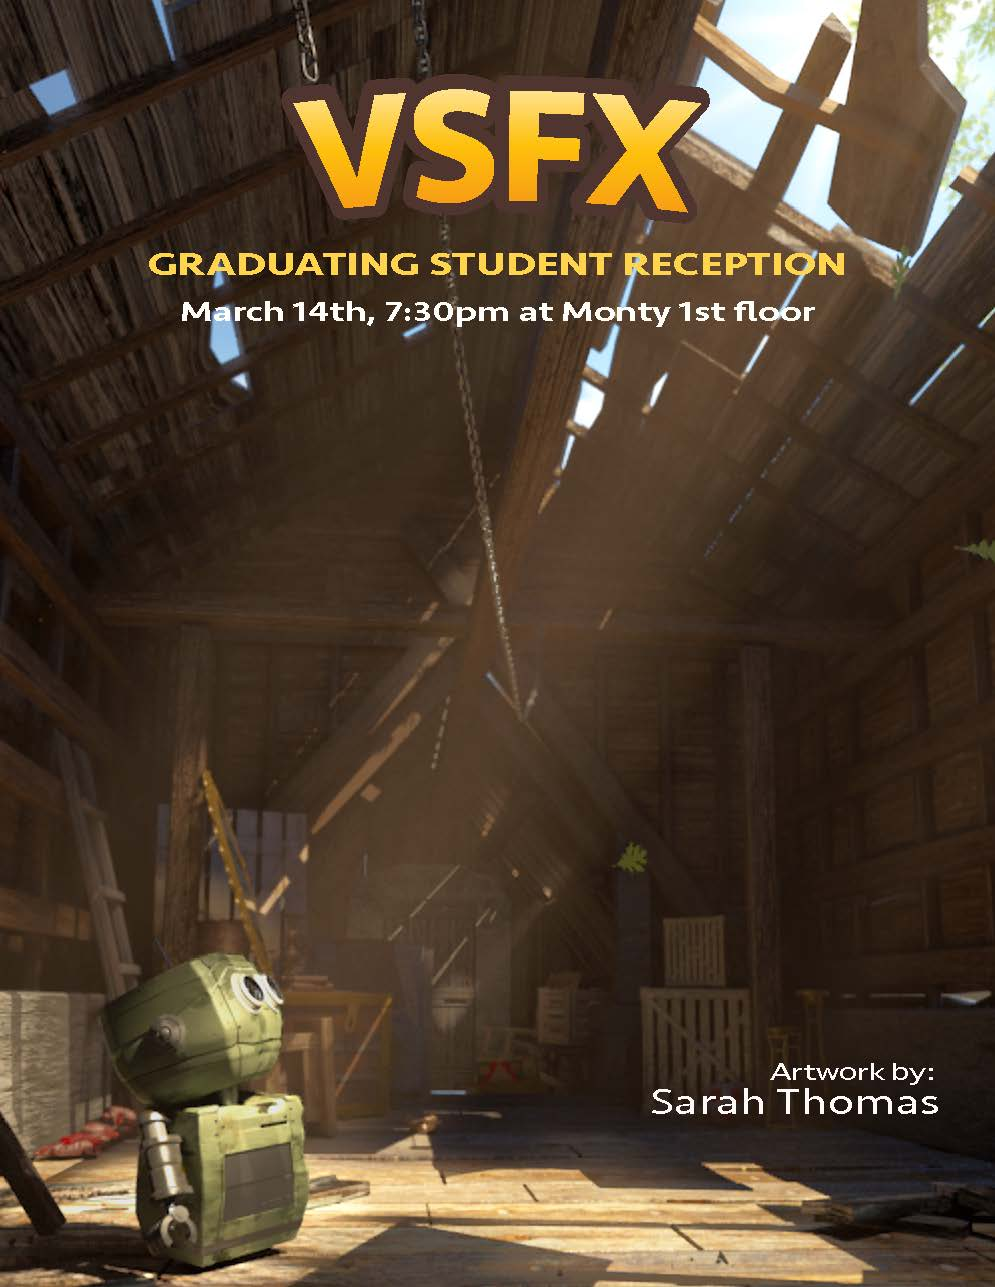 VSFX Graduating Student Reception